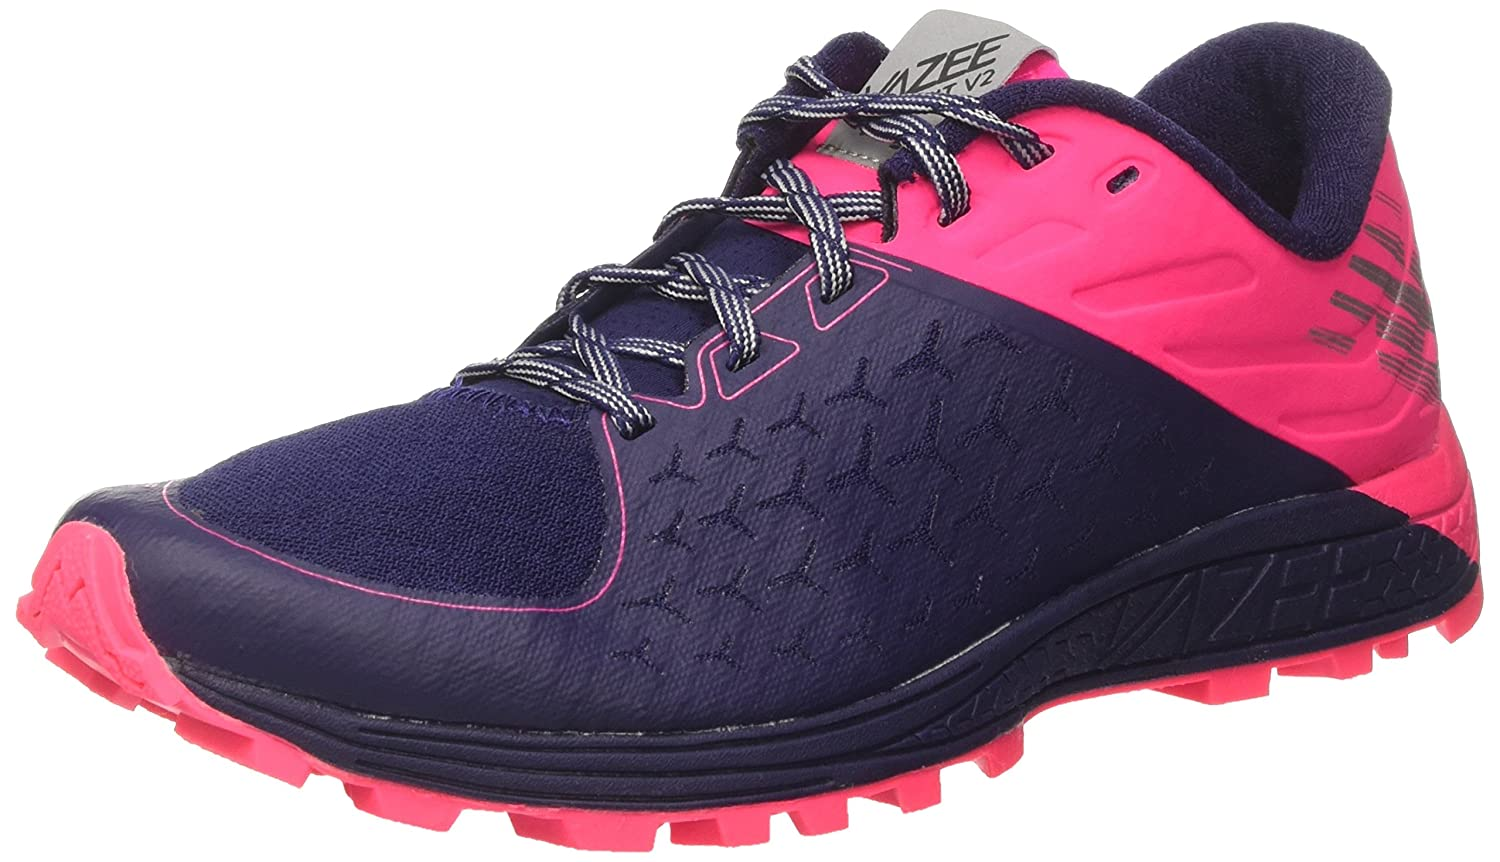 New Balance Women's Vazee Summit V2 Running Shoe Trail Runner B01LZL82M9 6 D US|Dark Denim/Alpha Pink